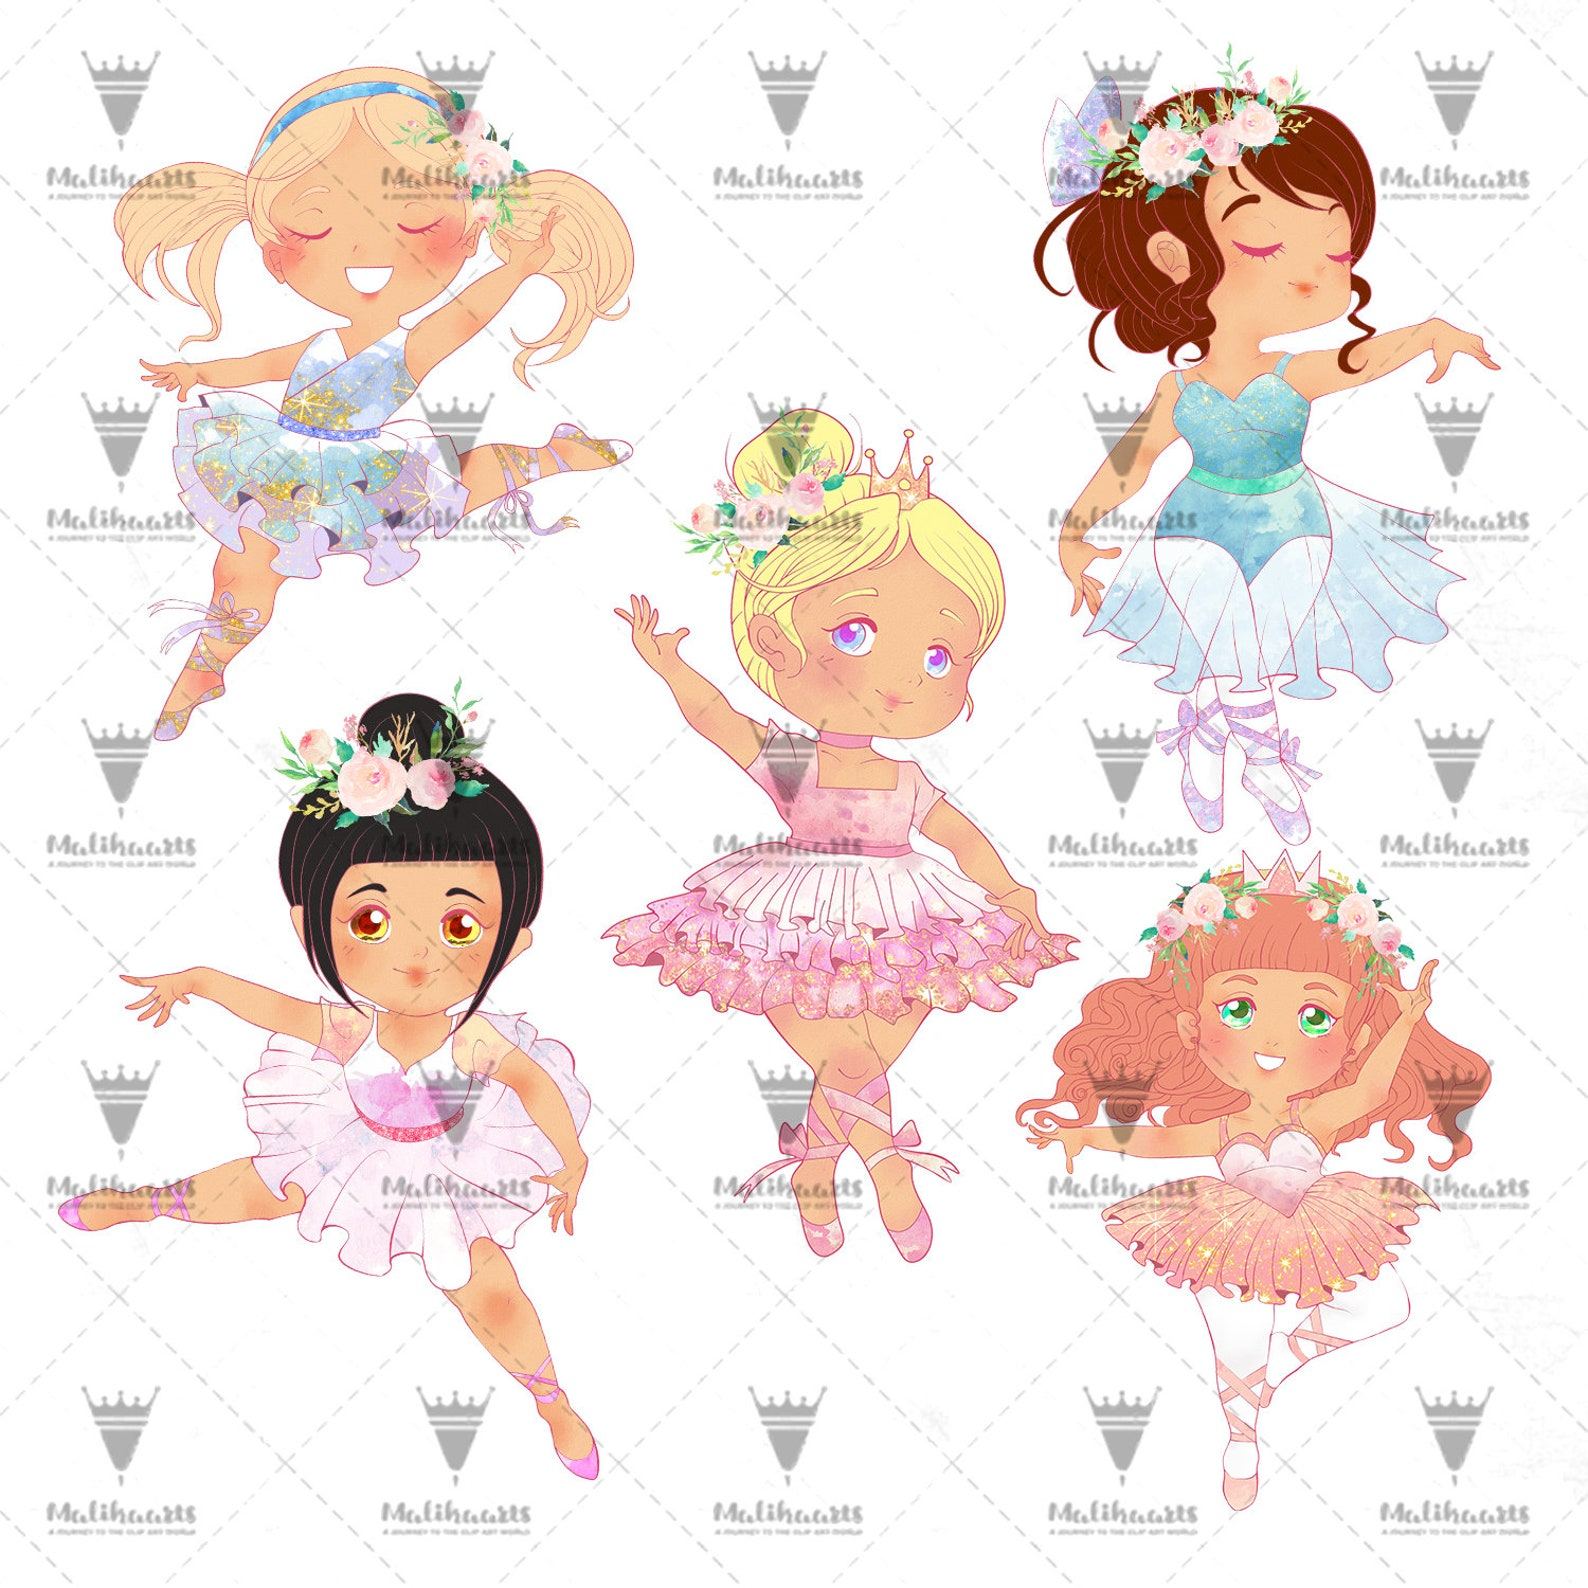 ballet clipart, ballerina clipart, girl ballet, dancing clipart, swan clipart, ballet shoes, ballet dress, instant download png